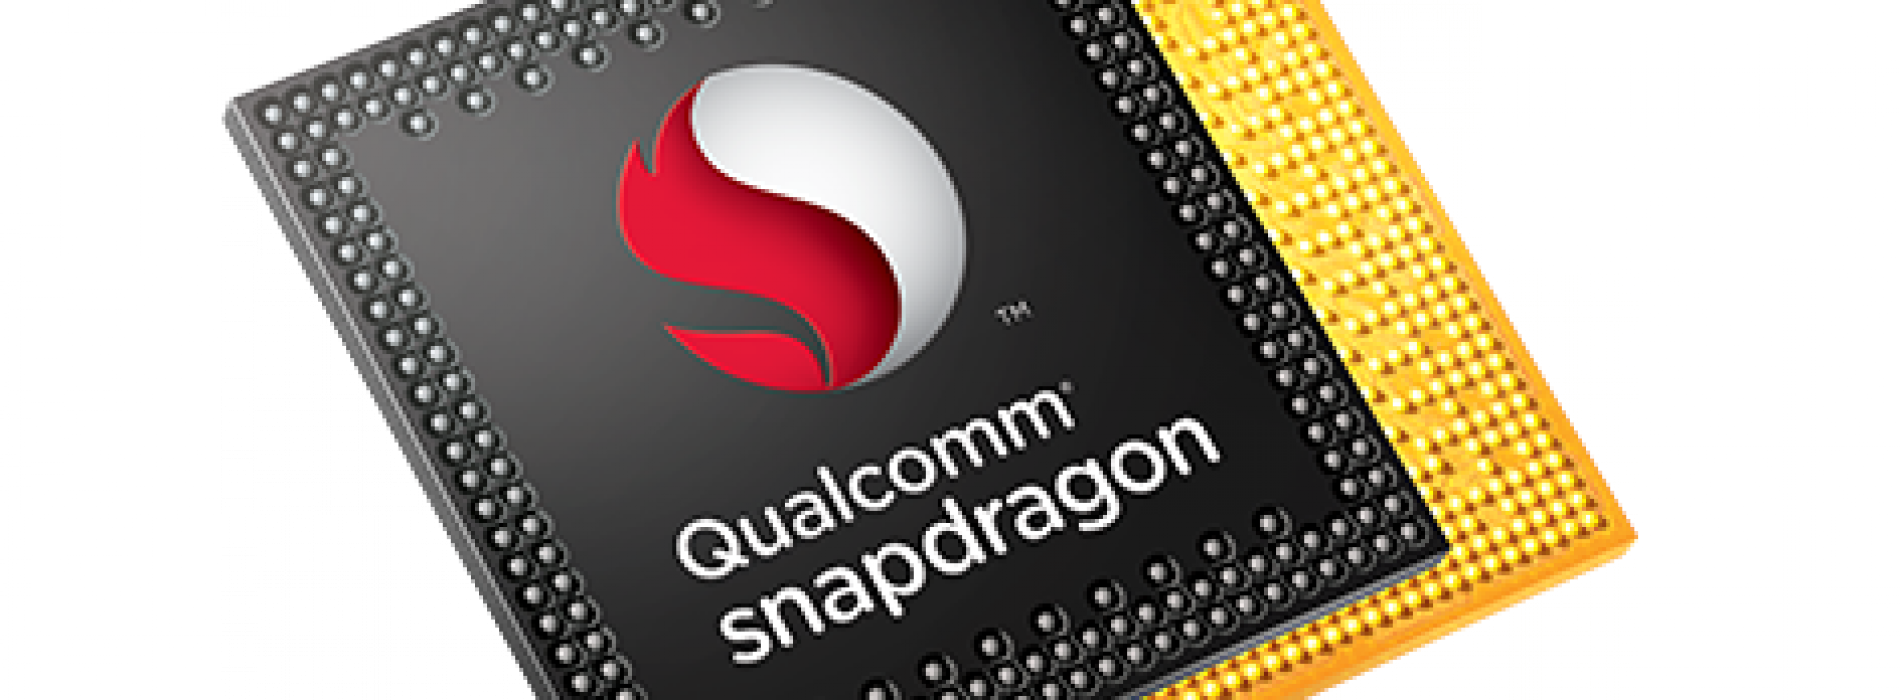 Qualcomm rolls out 8-core Snapdragon 615 CPU